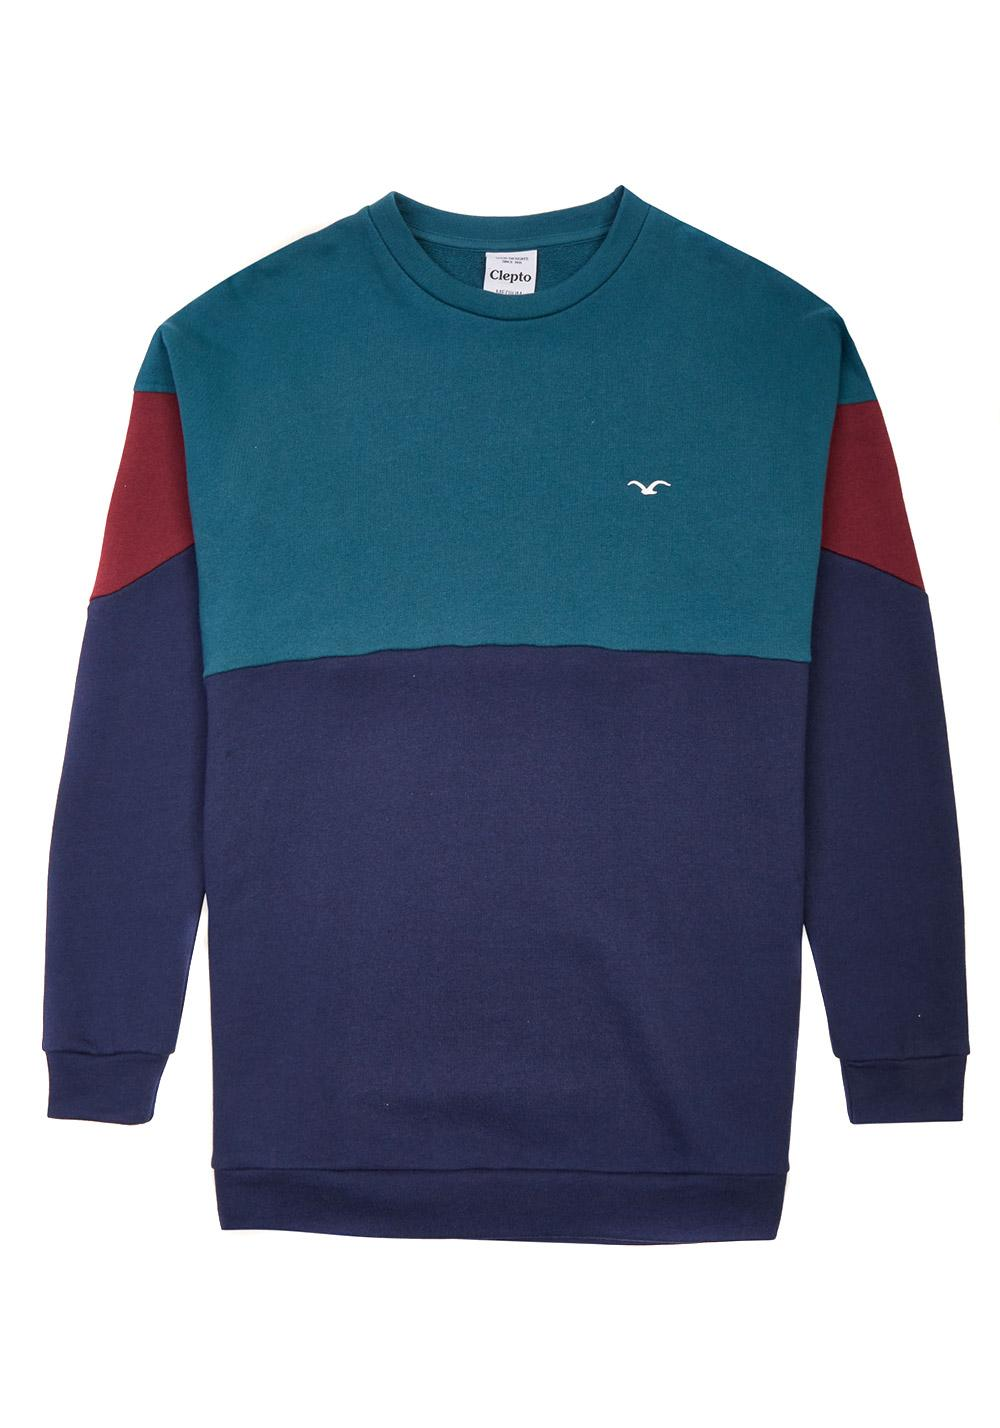 Sweat Cleptomanicx Drop 91 - Größe: L - Farbe: Multicolor